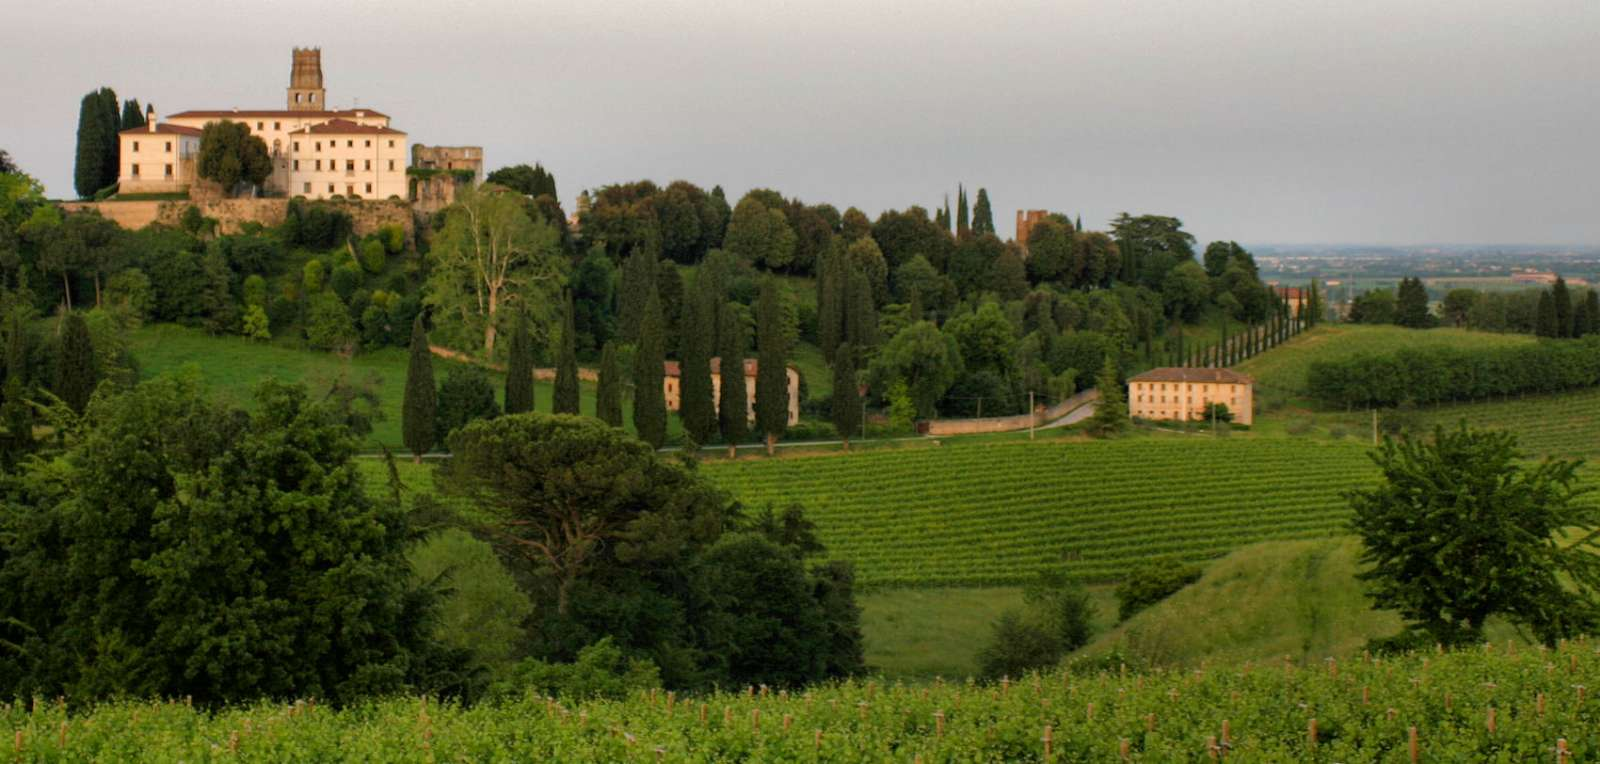 The Veneto also offers breathtaking vineyards